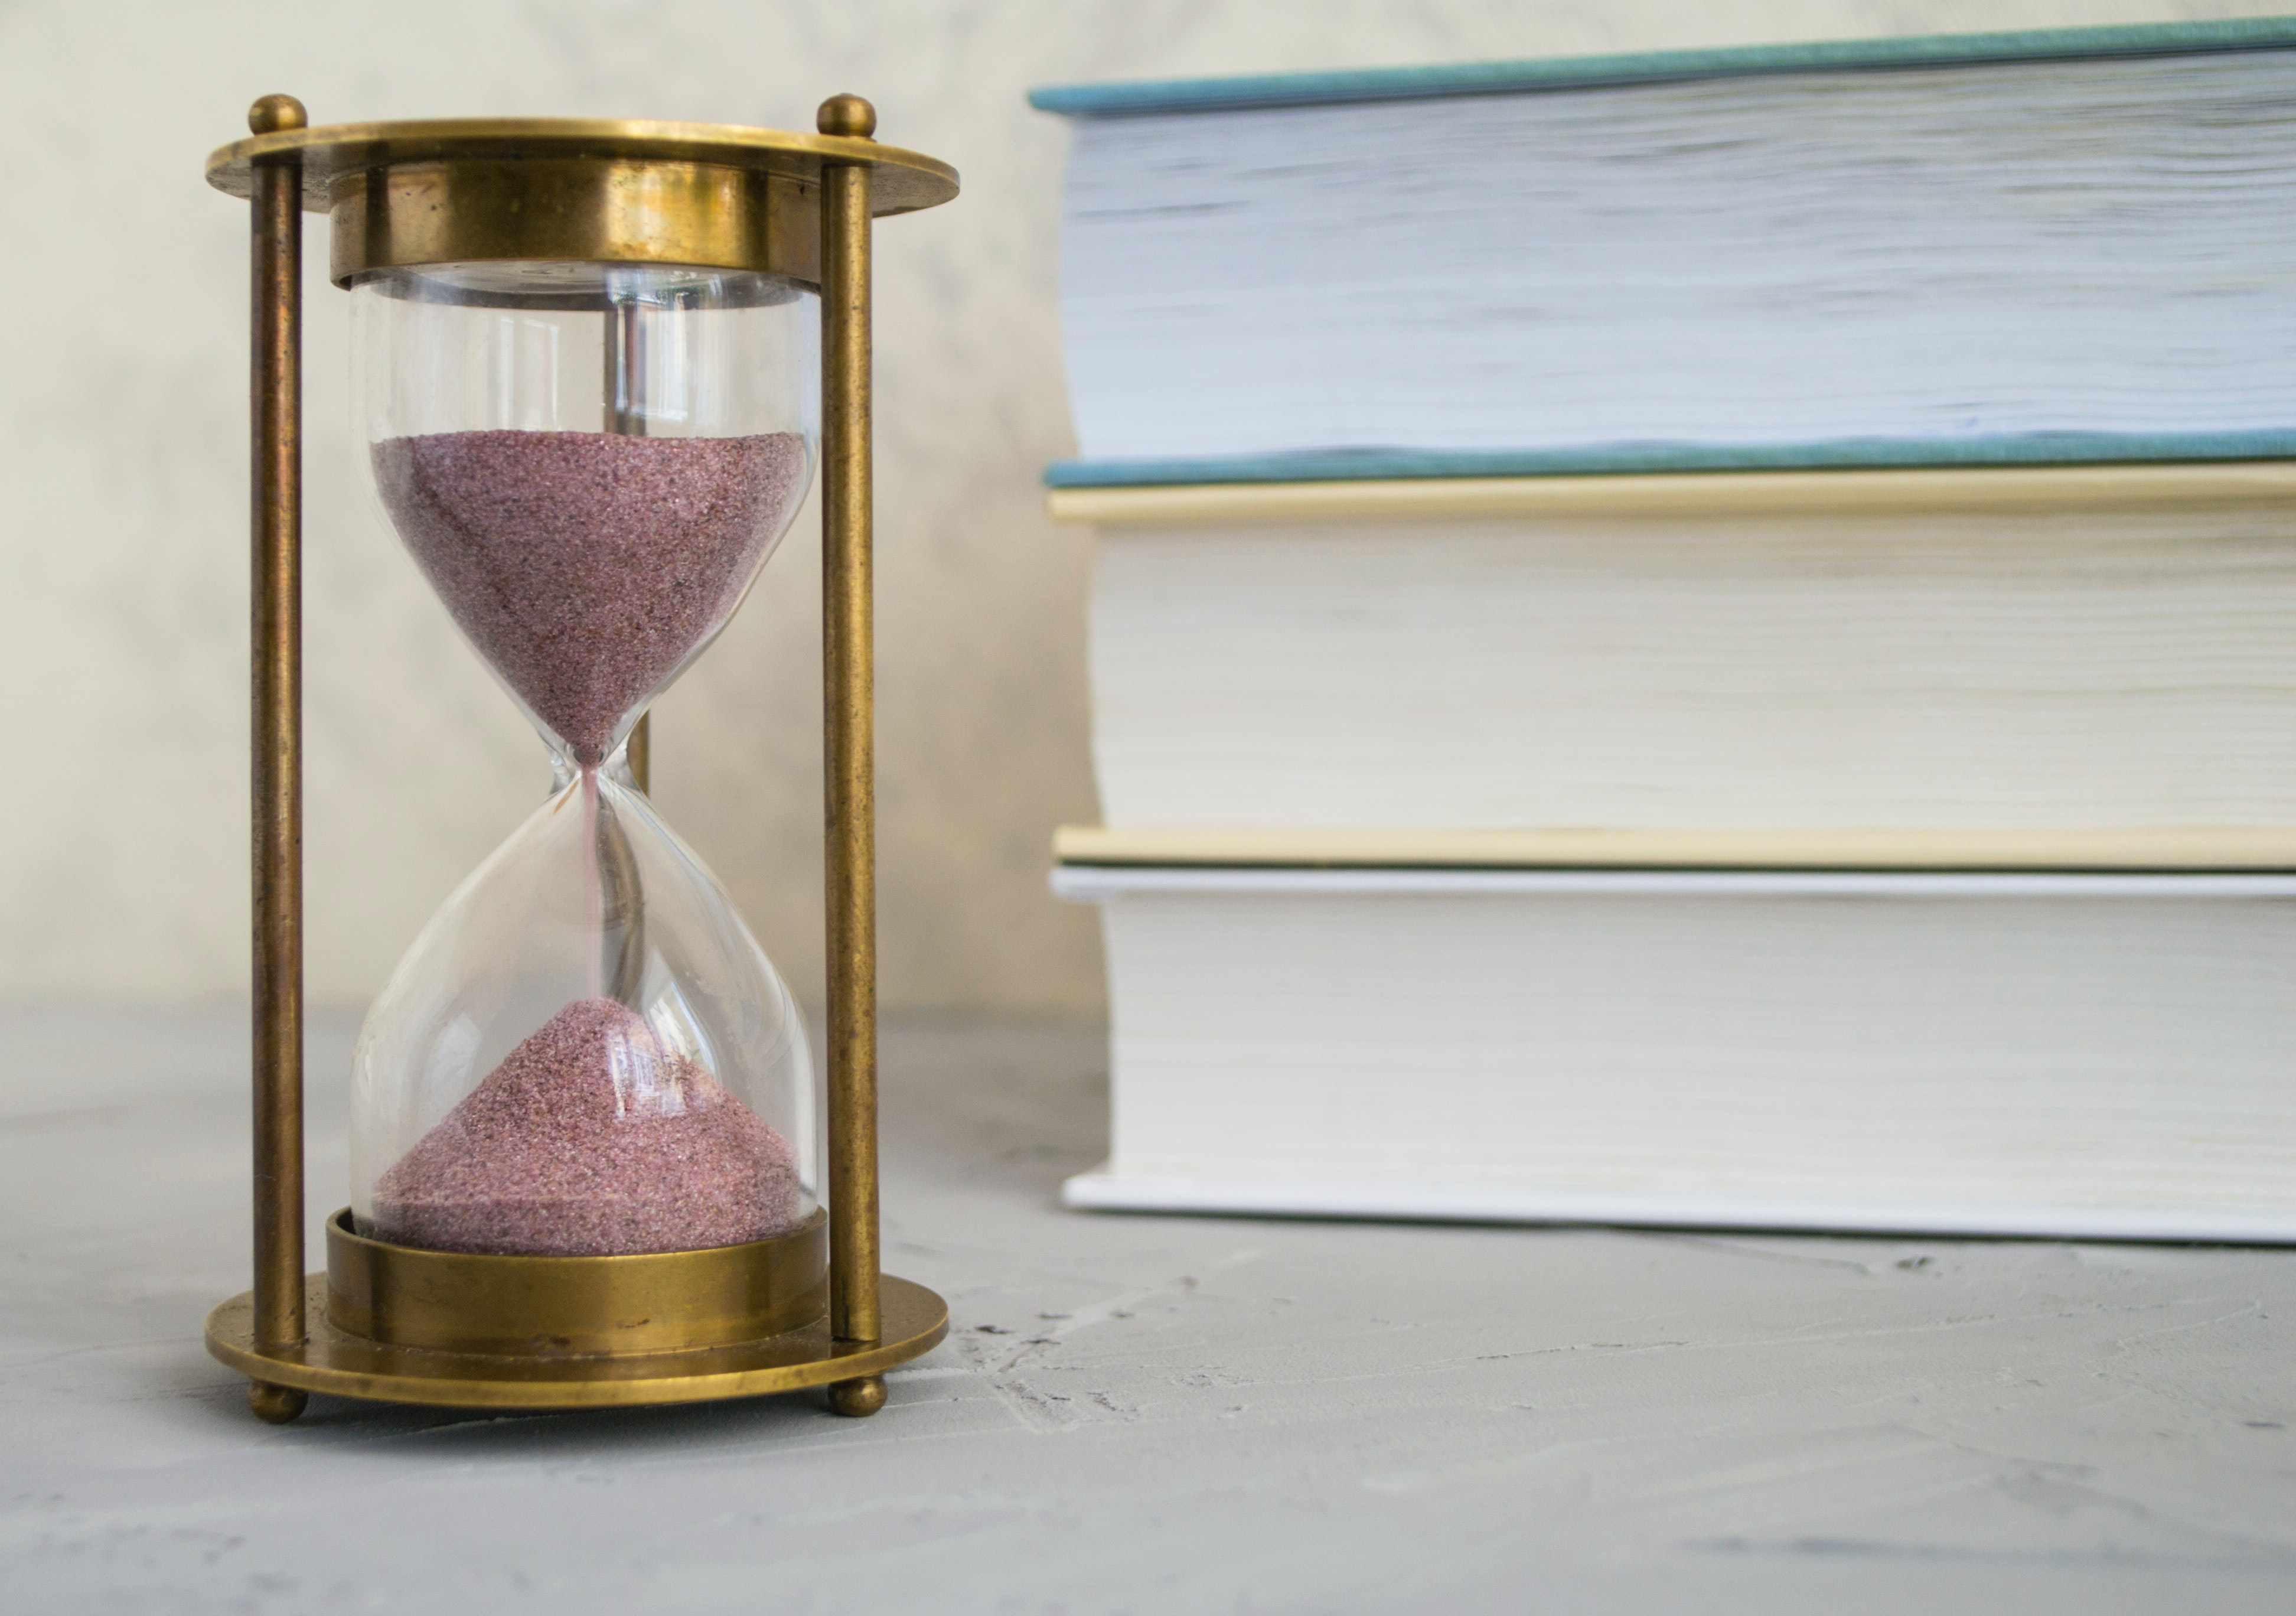 An hourglass drains beside a stack of books